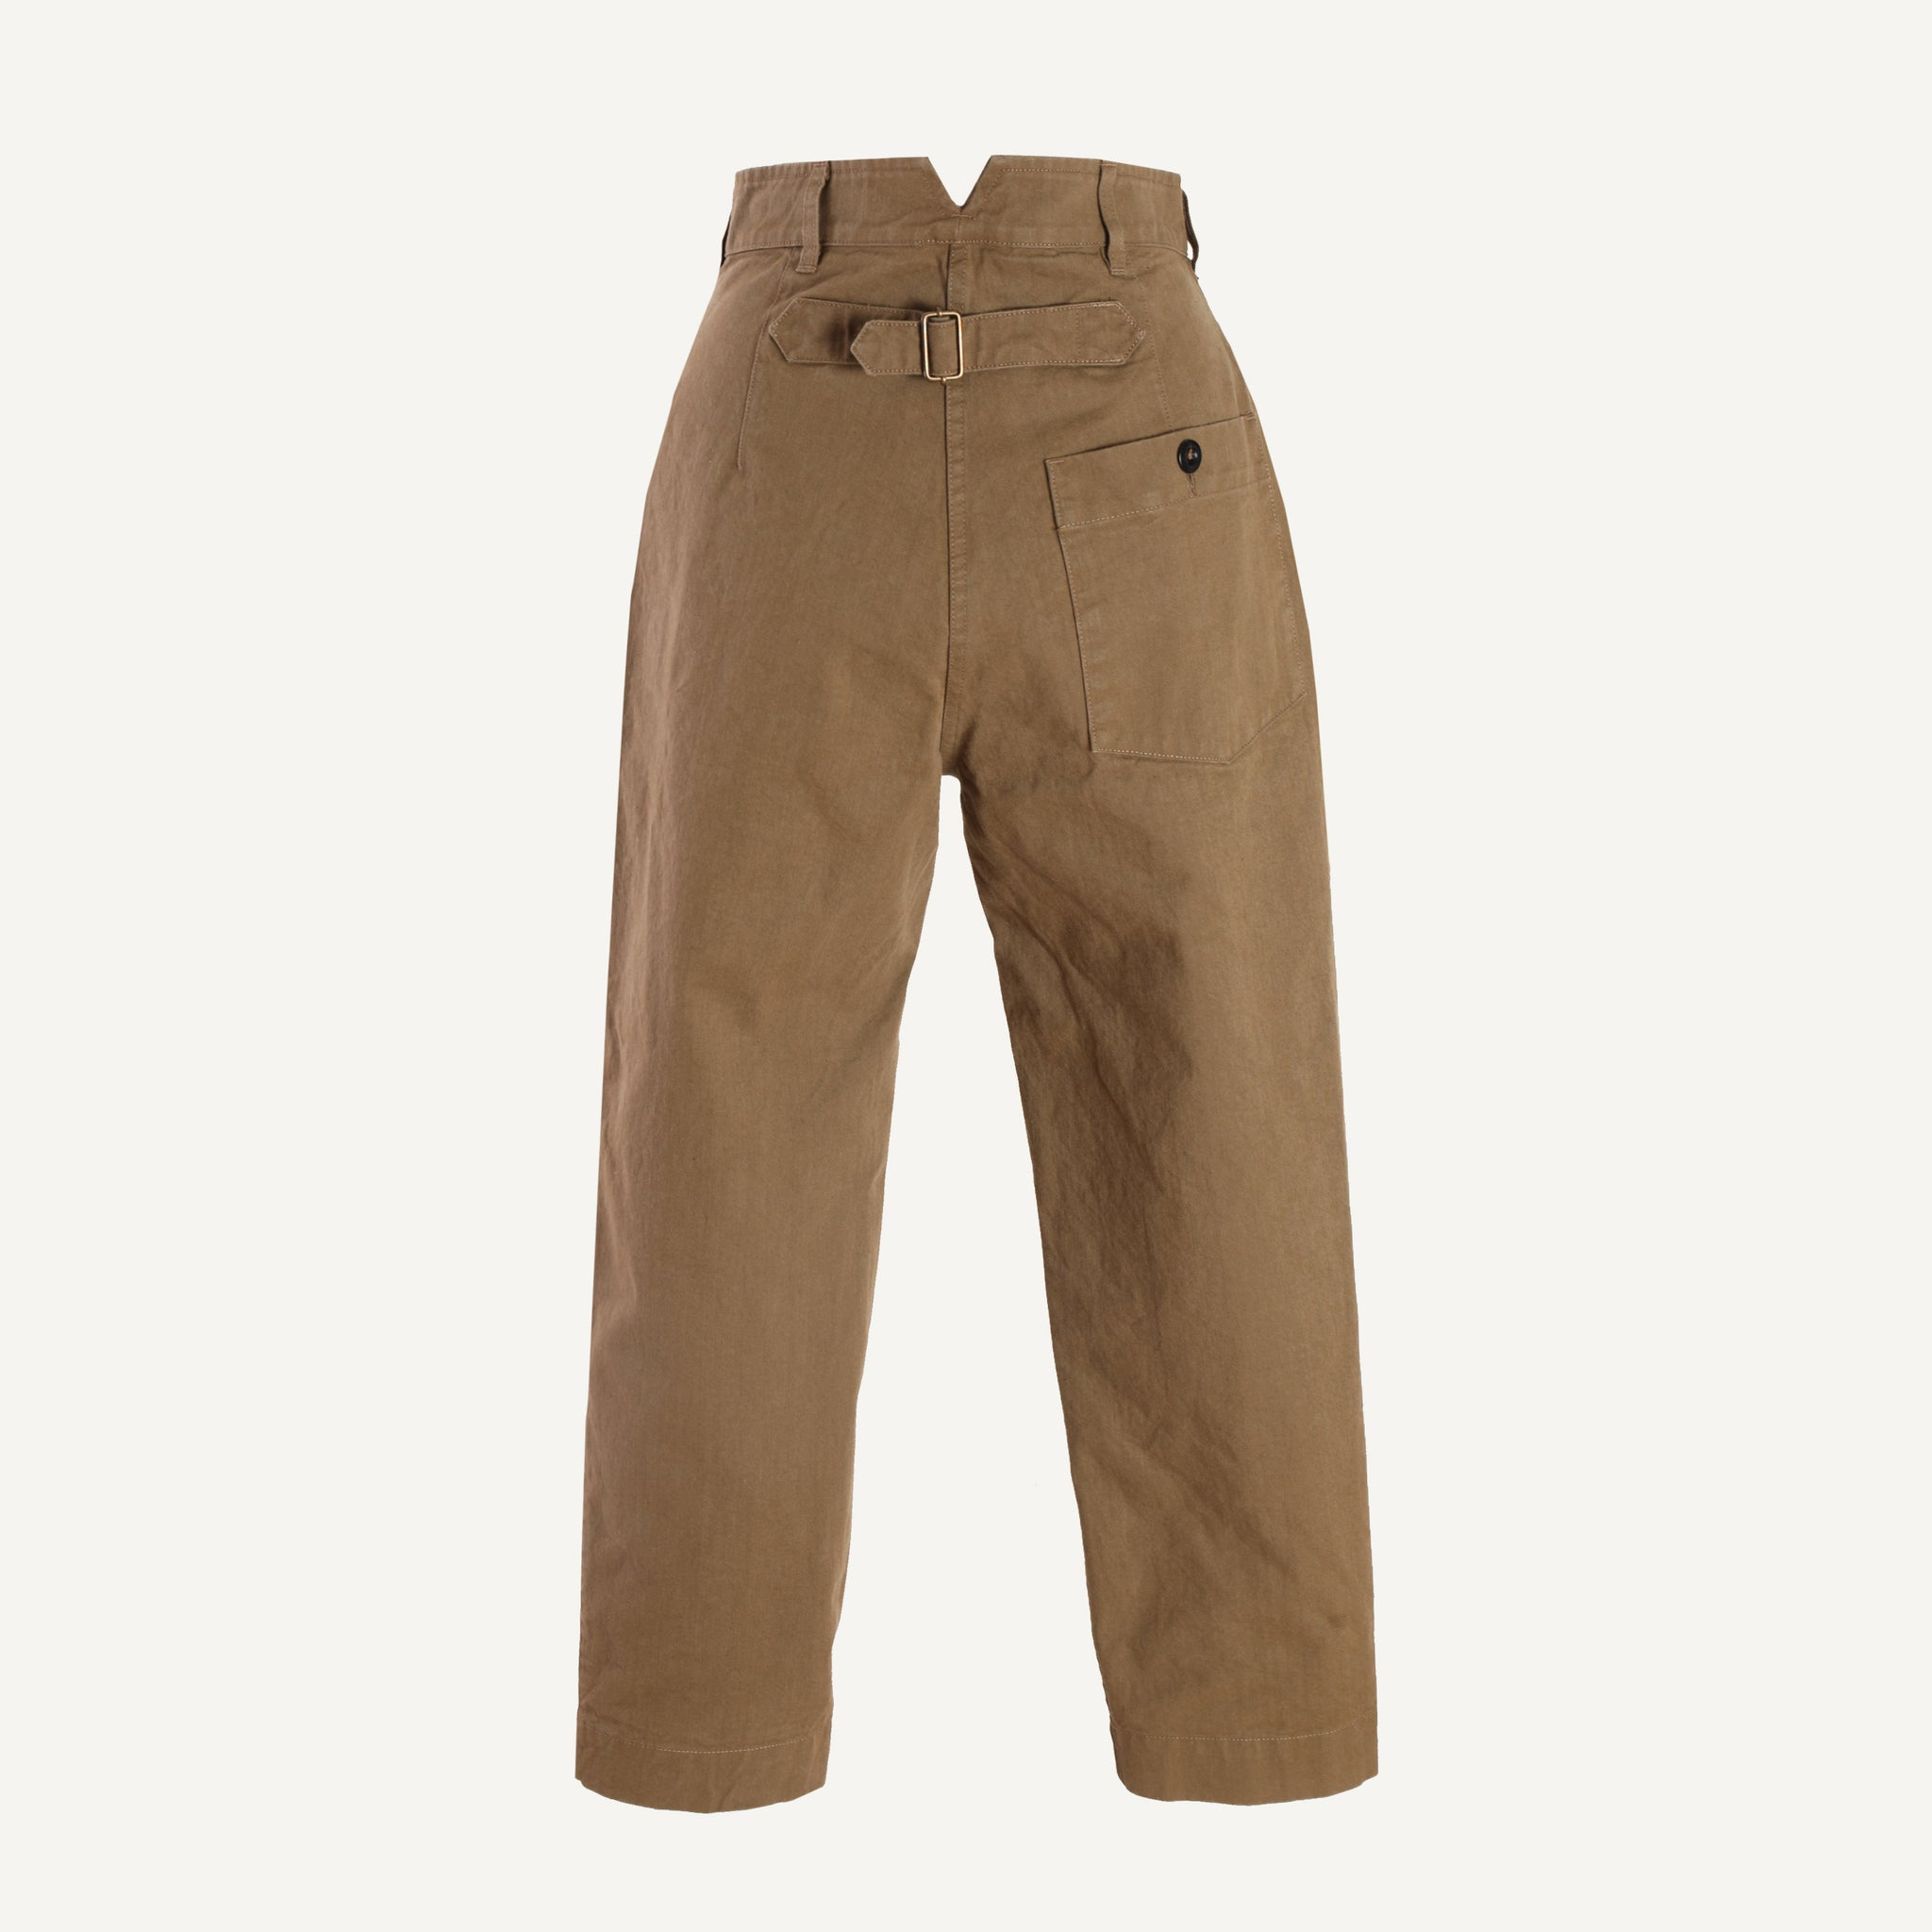 MHL WOMEN'S CINCHED BACK TAPERED TROUSERS